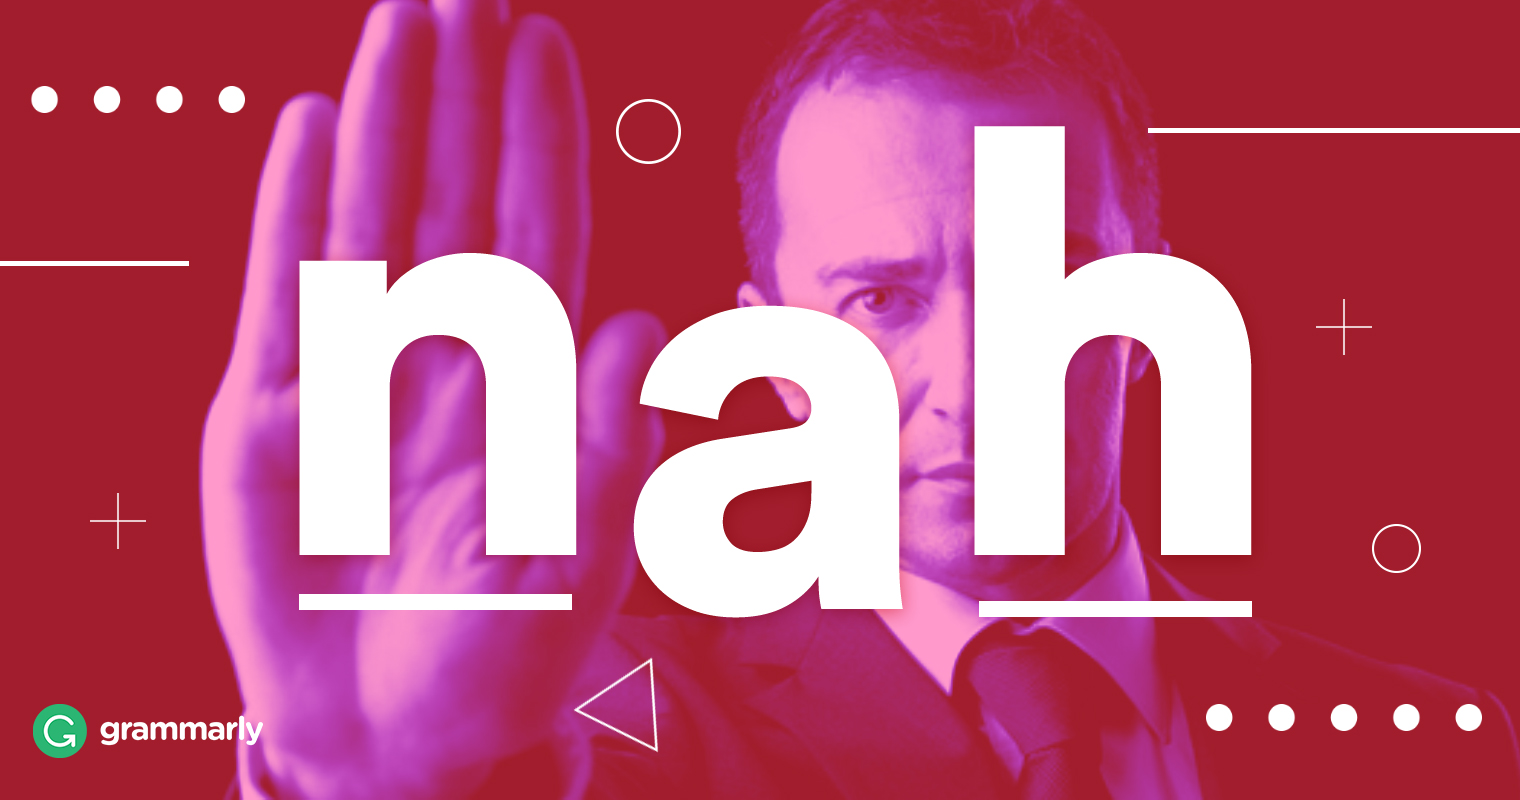 what does nah mean grammarly